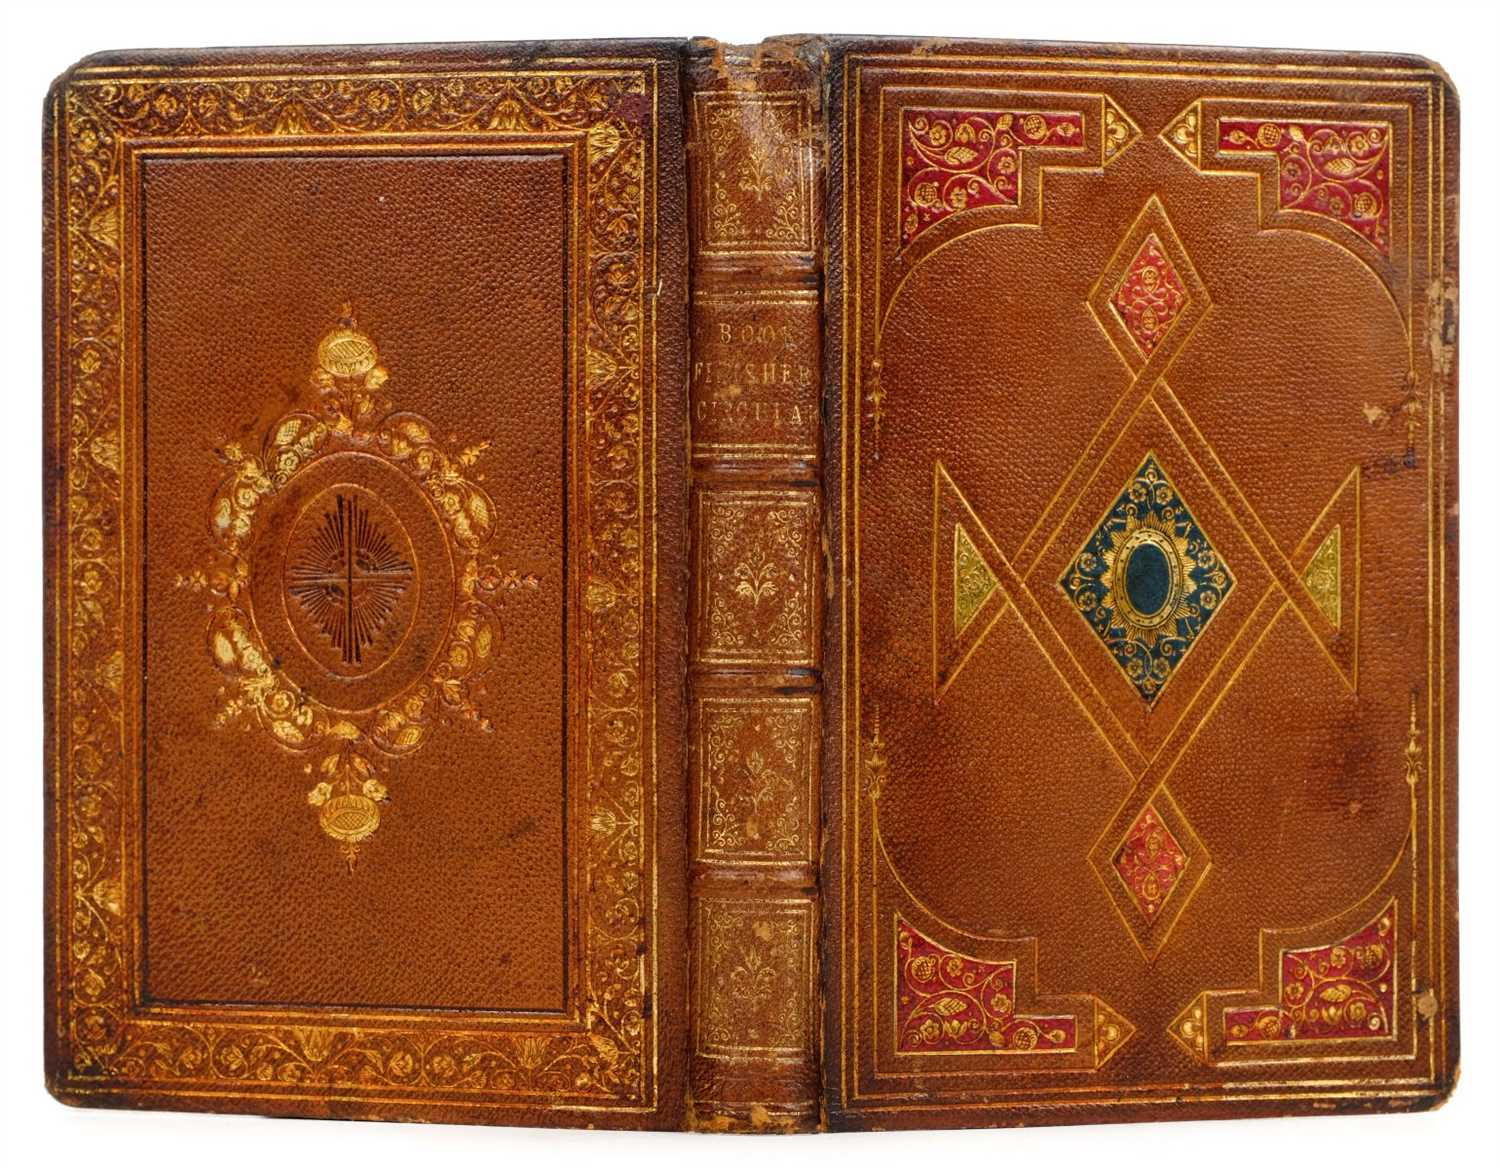 Lot 378 - Bookbinding. The Book-Finishers' Friendly Circular, 1845-51